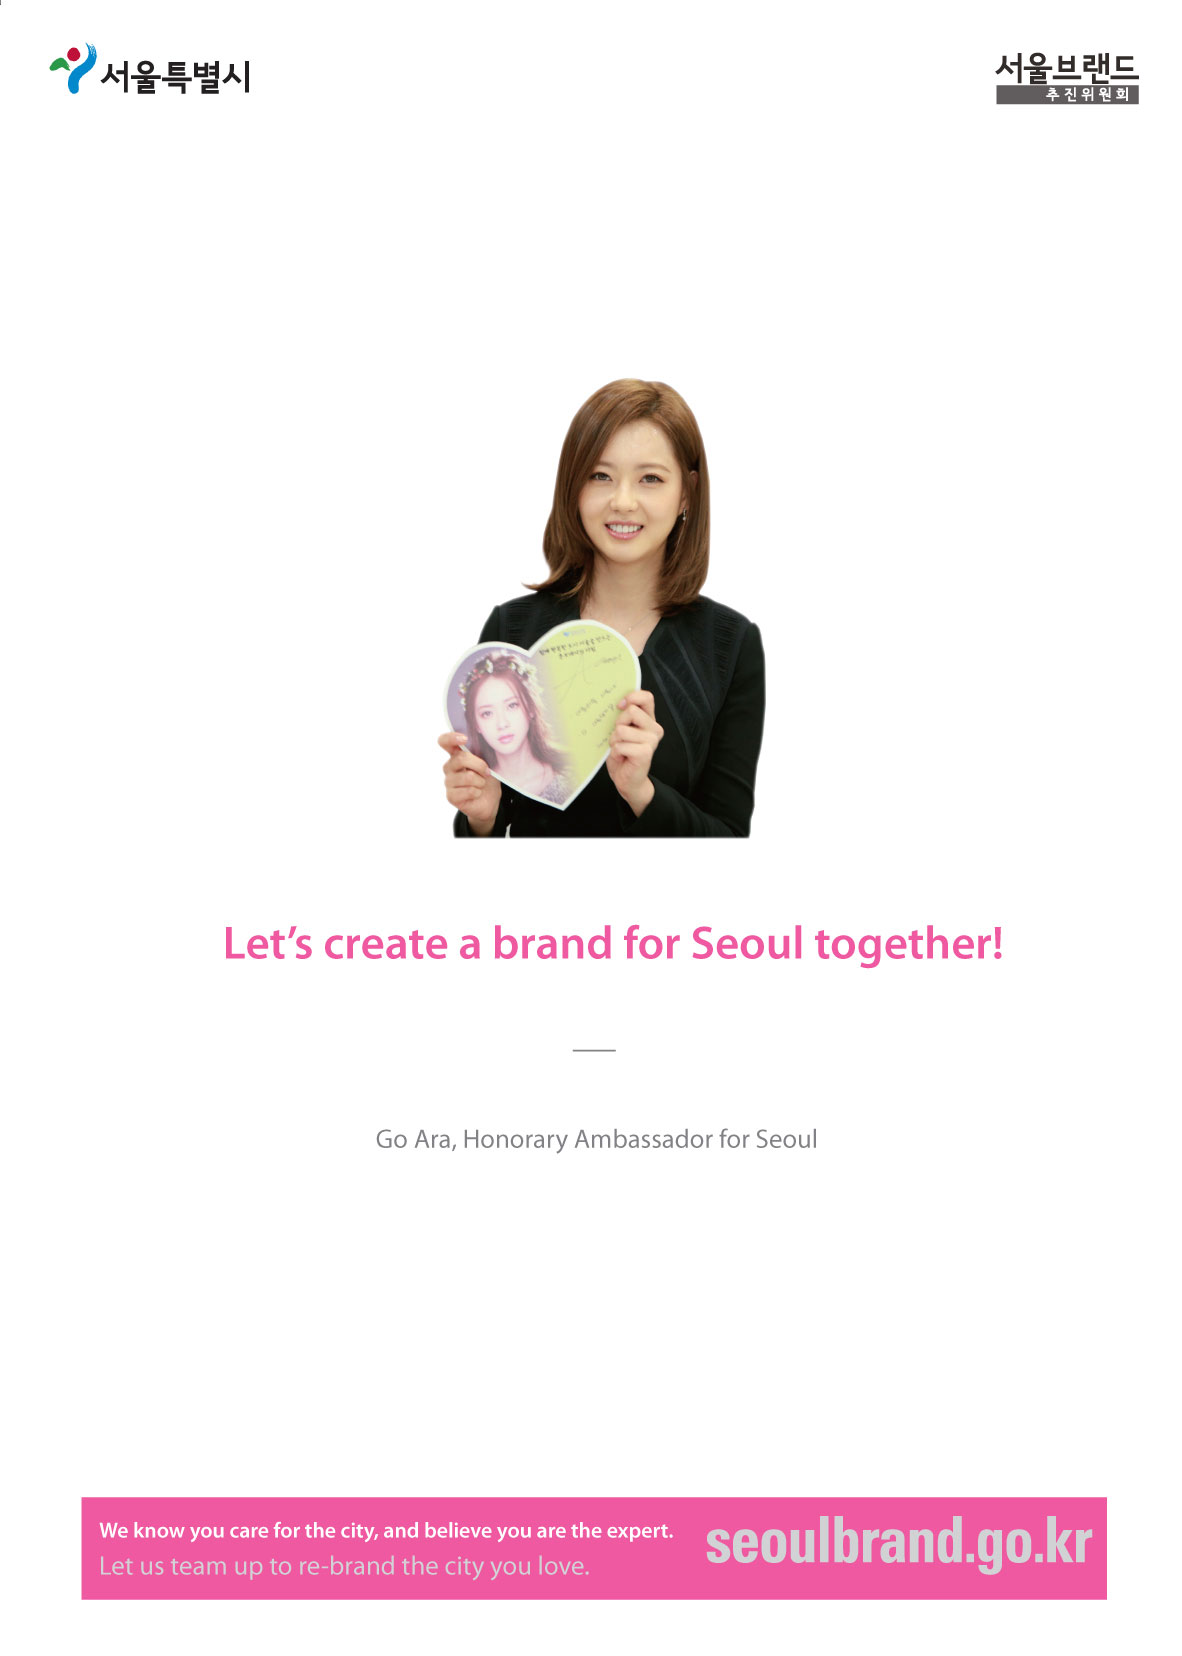 Let's create a brand for Seoul together! Go Ara, Honorary Ambassador for Seoul We know you care for the city, and believe you are the expert. Let us team up to re-brand the city you love.